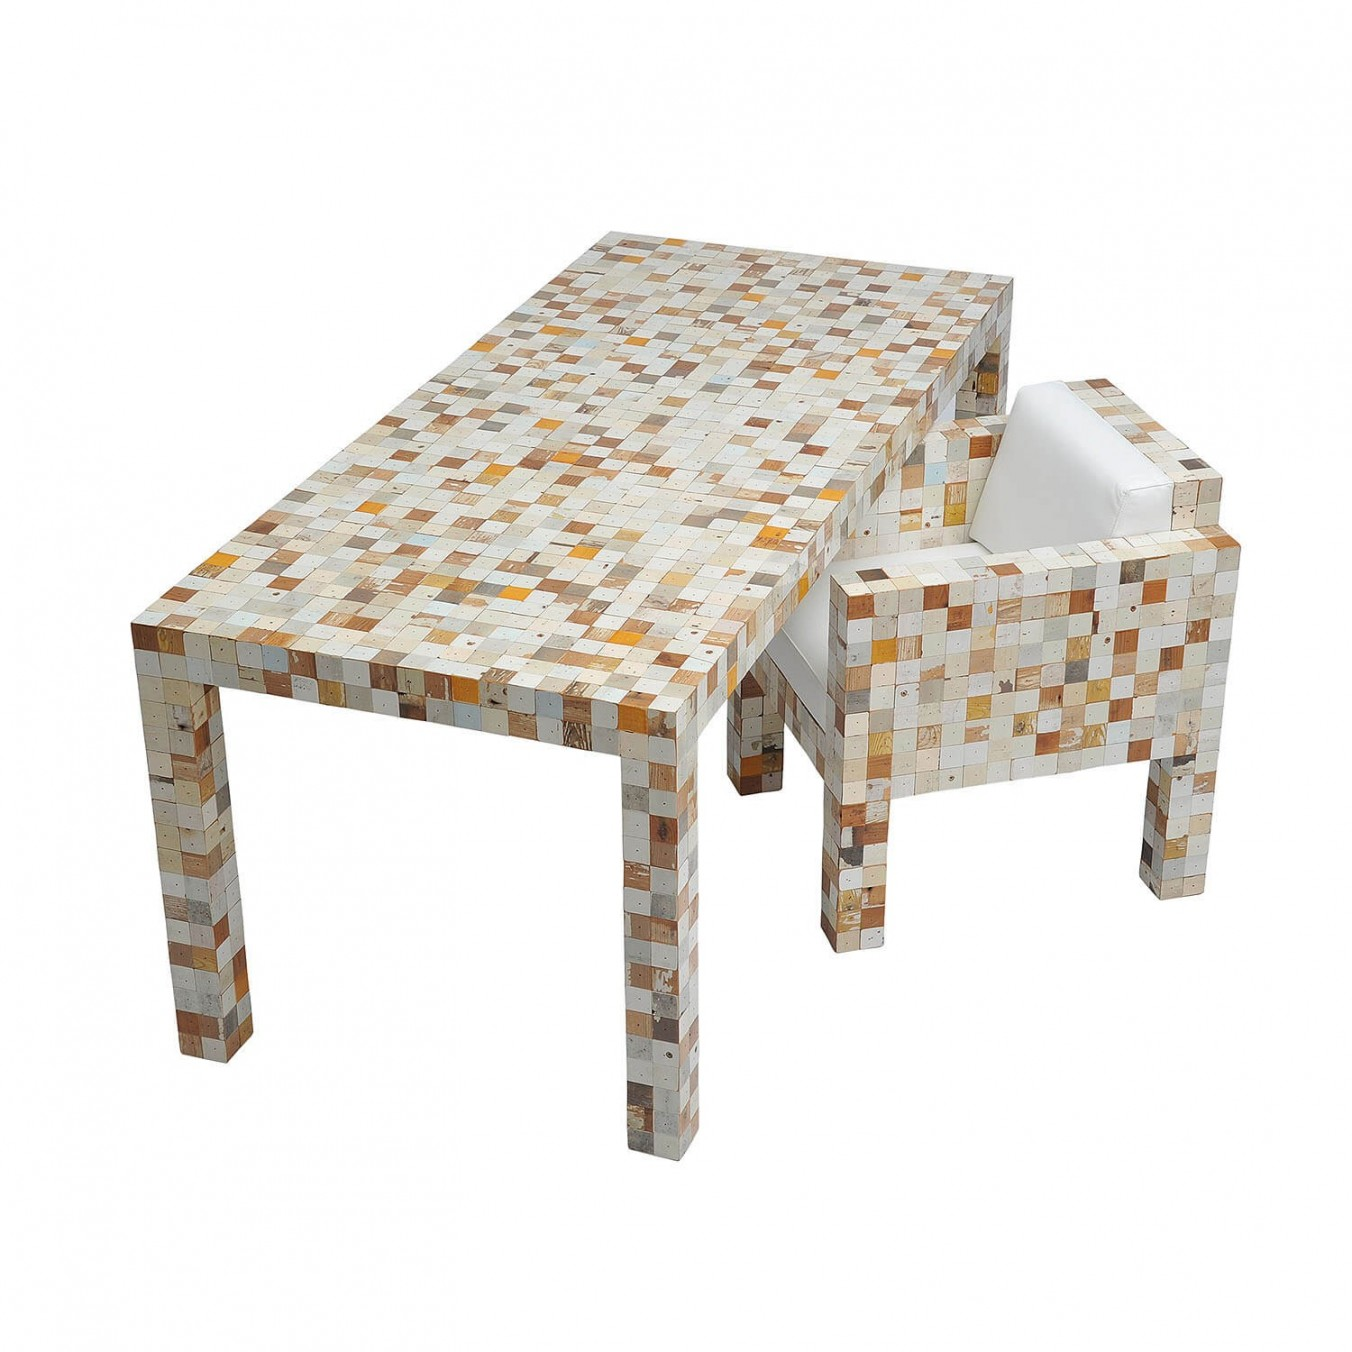 Waste waste table lacquered